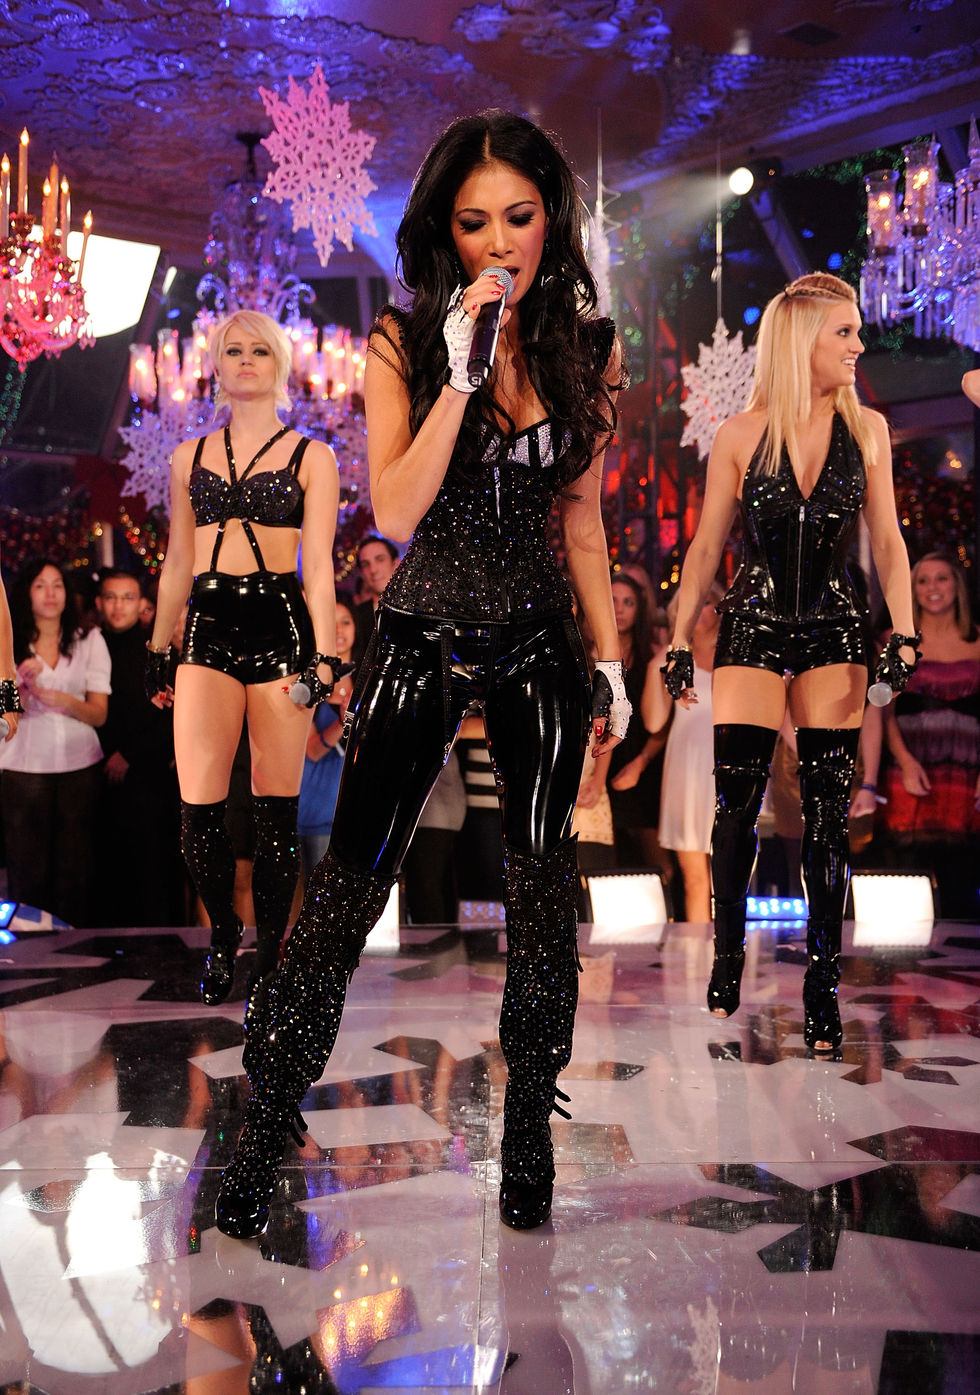 the-pussycat-dolls-perform-during-the-hills-season-4-finale-in-new-york-01